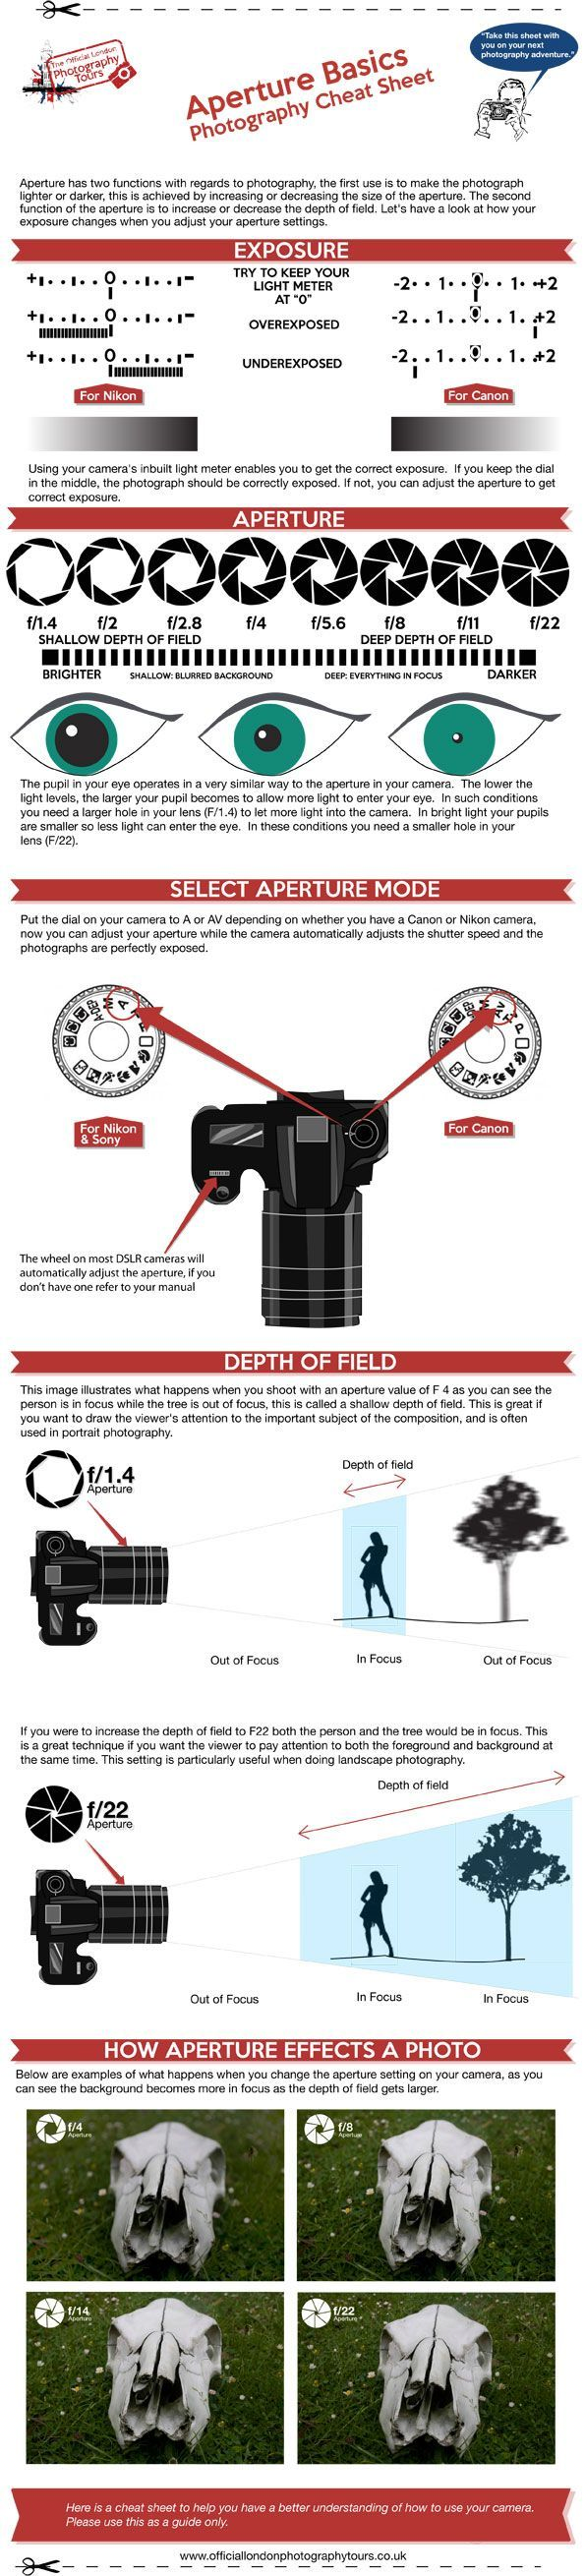 Aperture basics and F Stops Explained